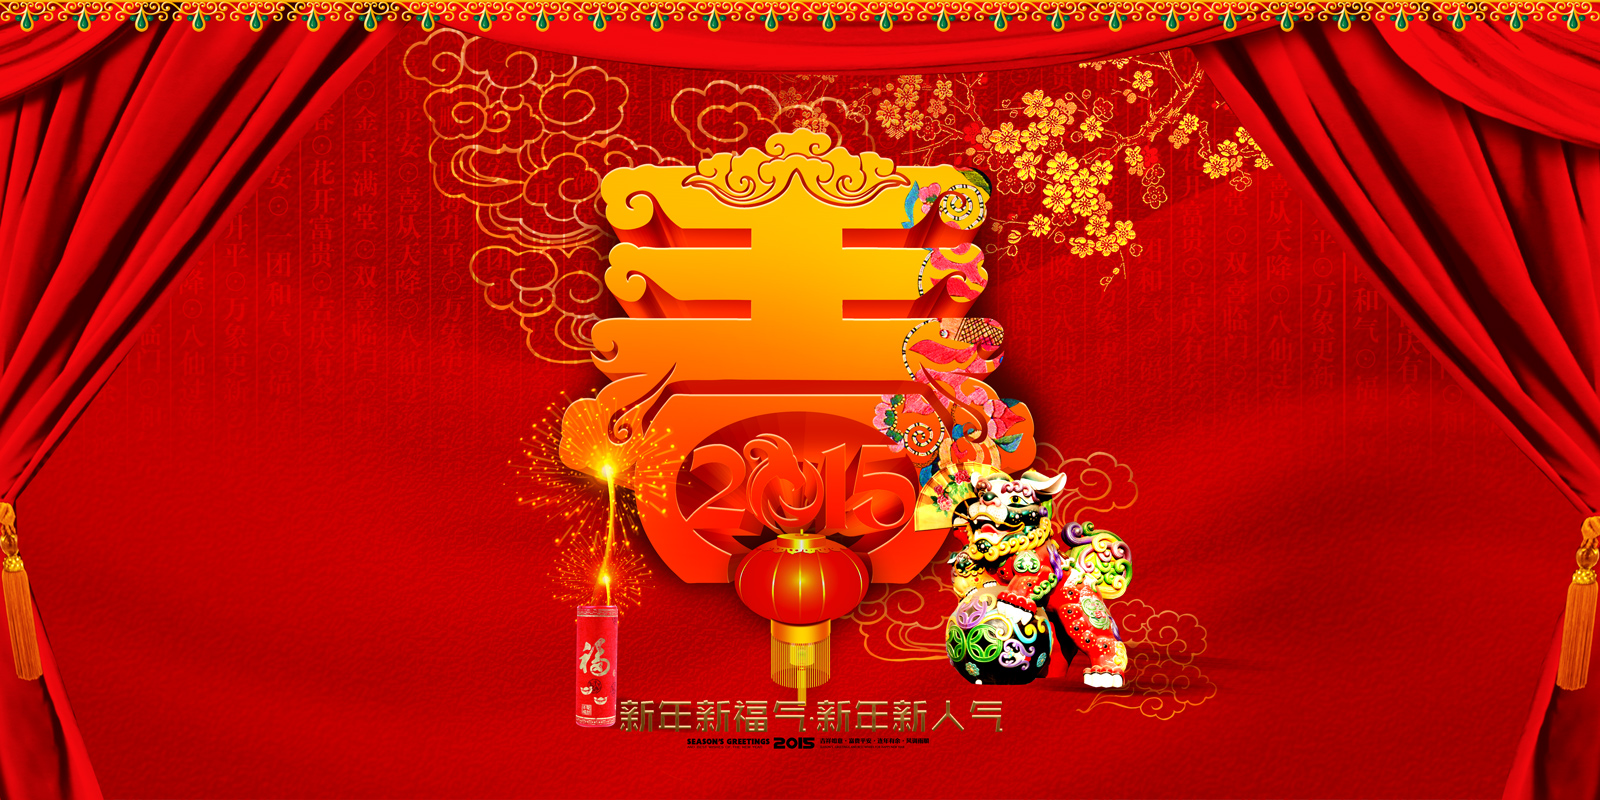 chinesefontdesign.com 2017 04 12 09 33 16 Happy Chinese New Year blessing background of happiness PSD File Free Download Happy New Year PSD